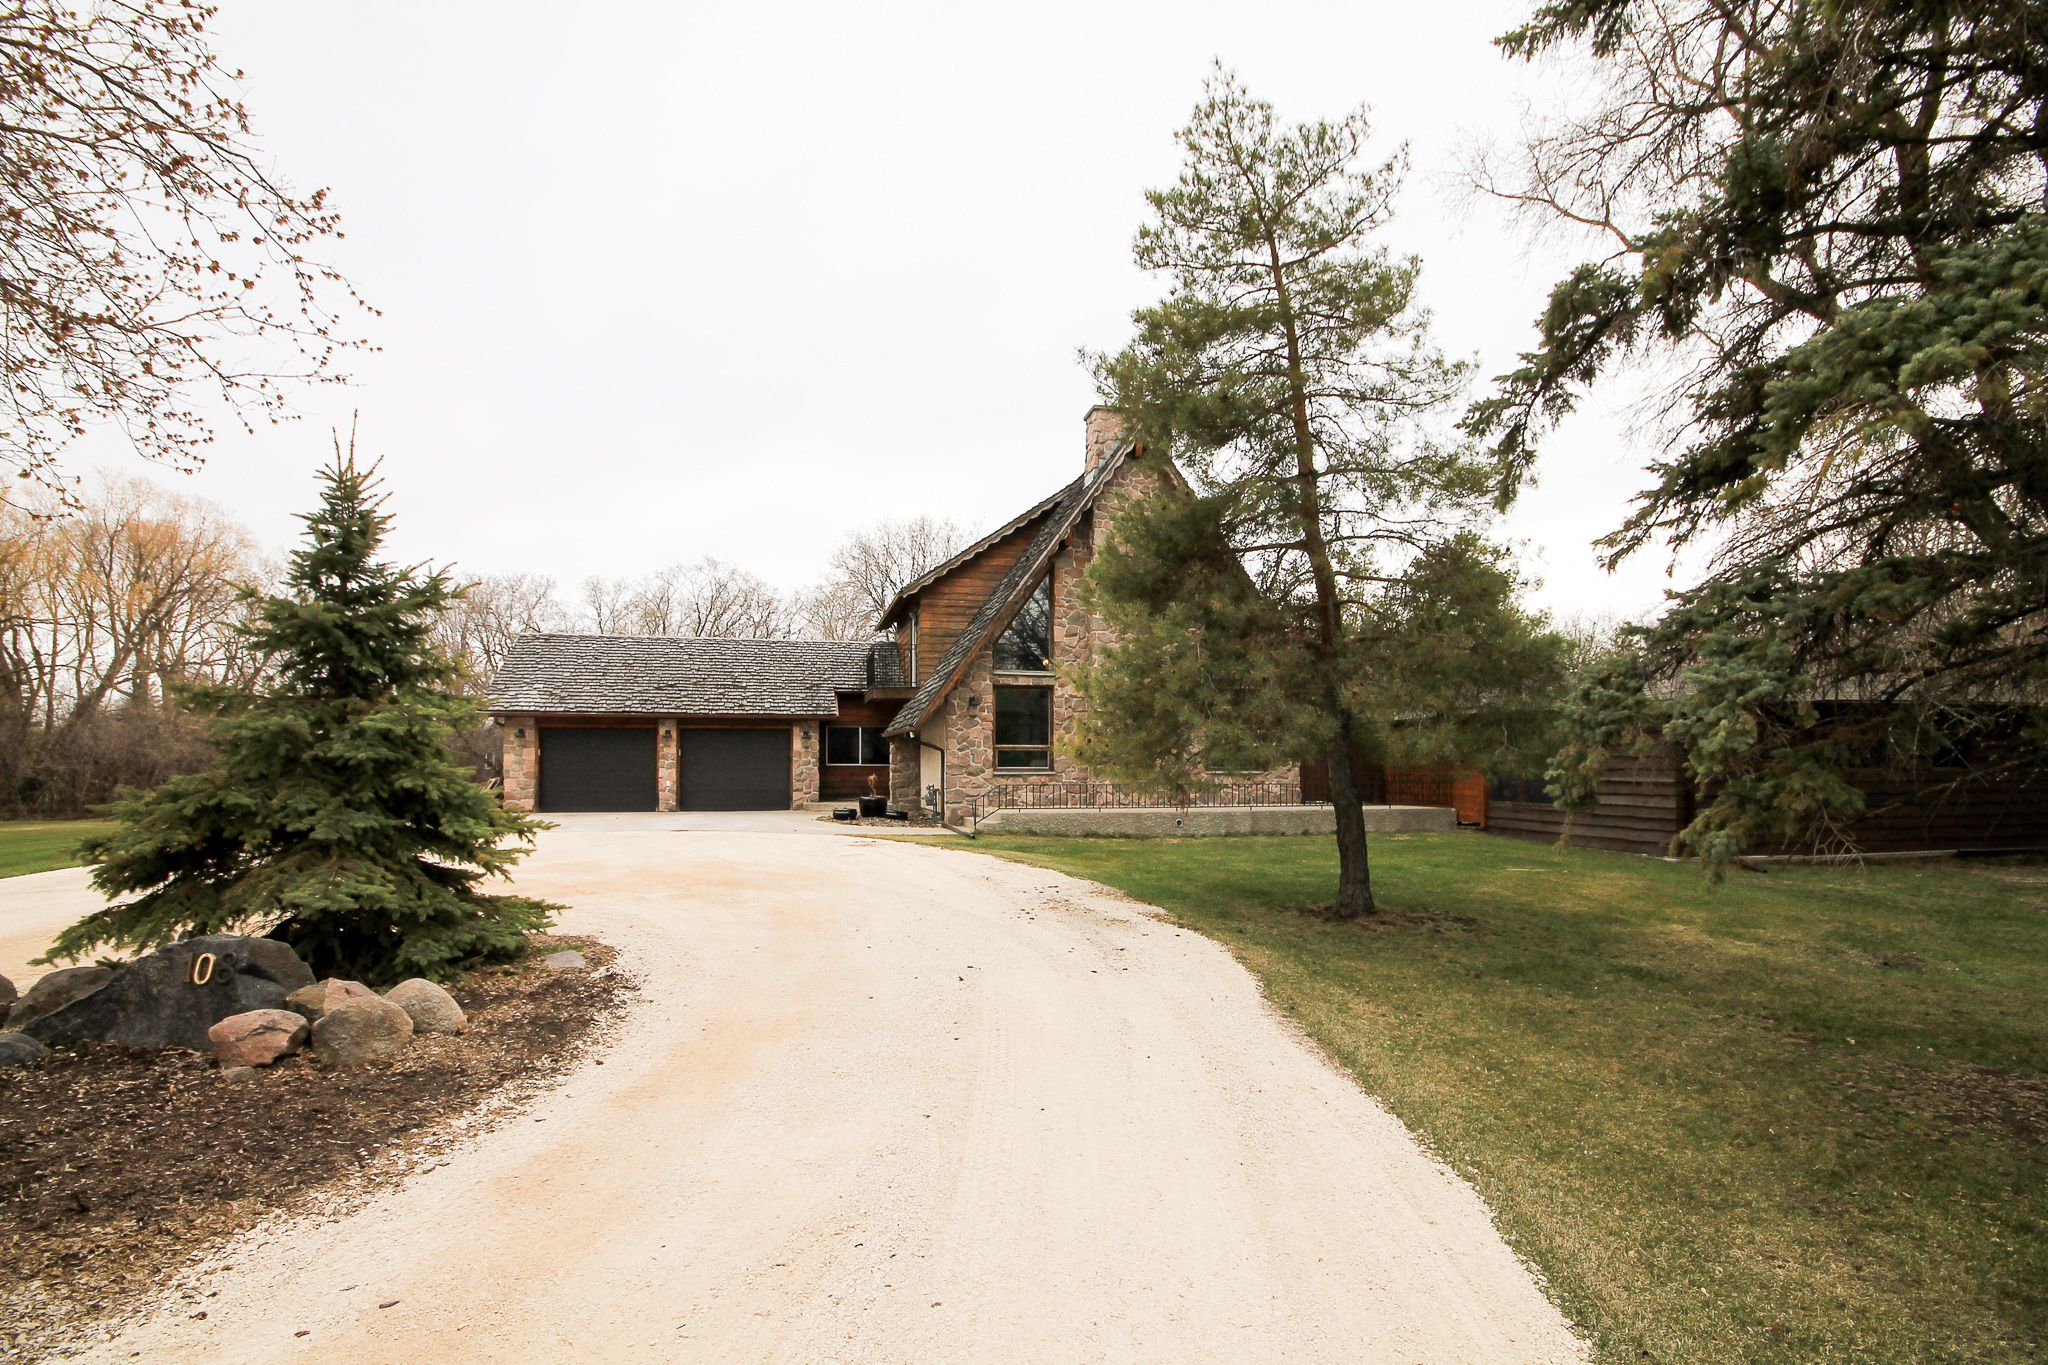 Main Photo: 108 McKenzie Road in St Andrews: Mapleton House for sale